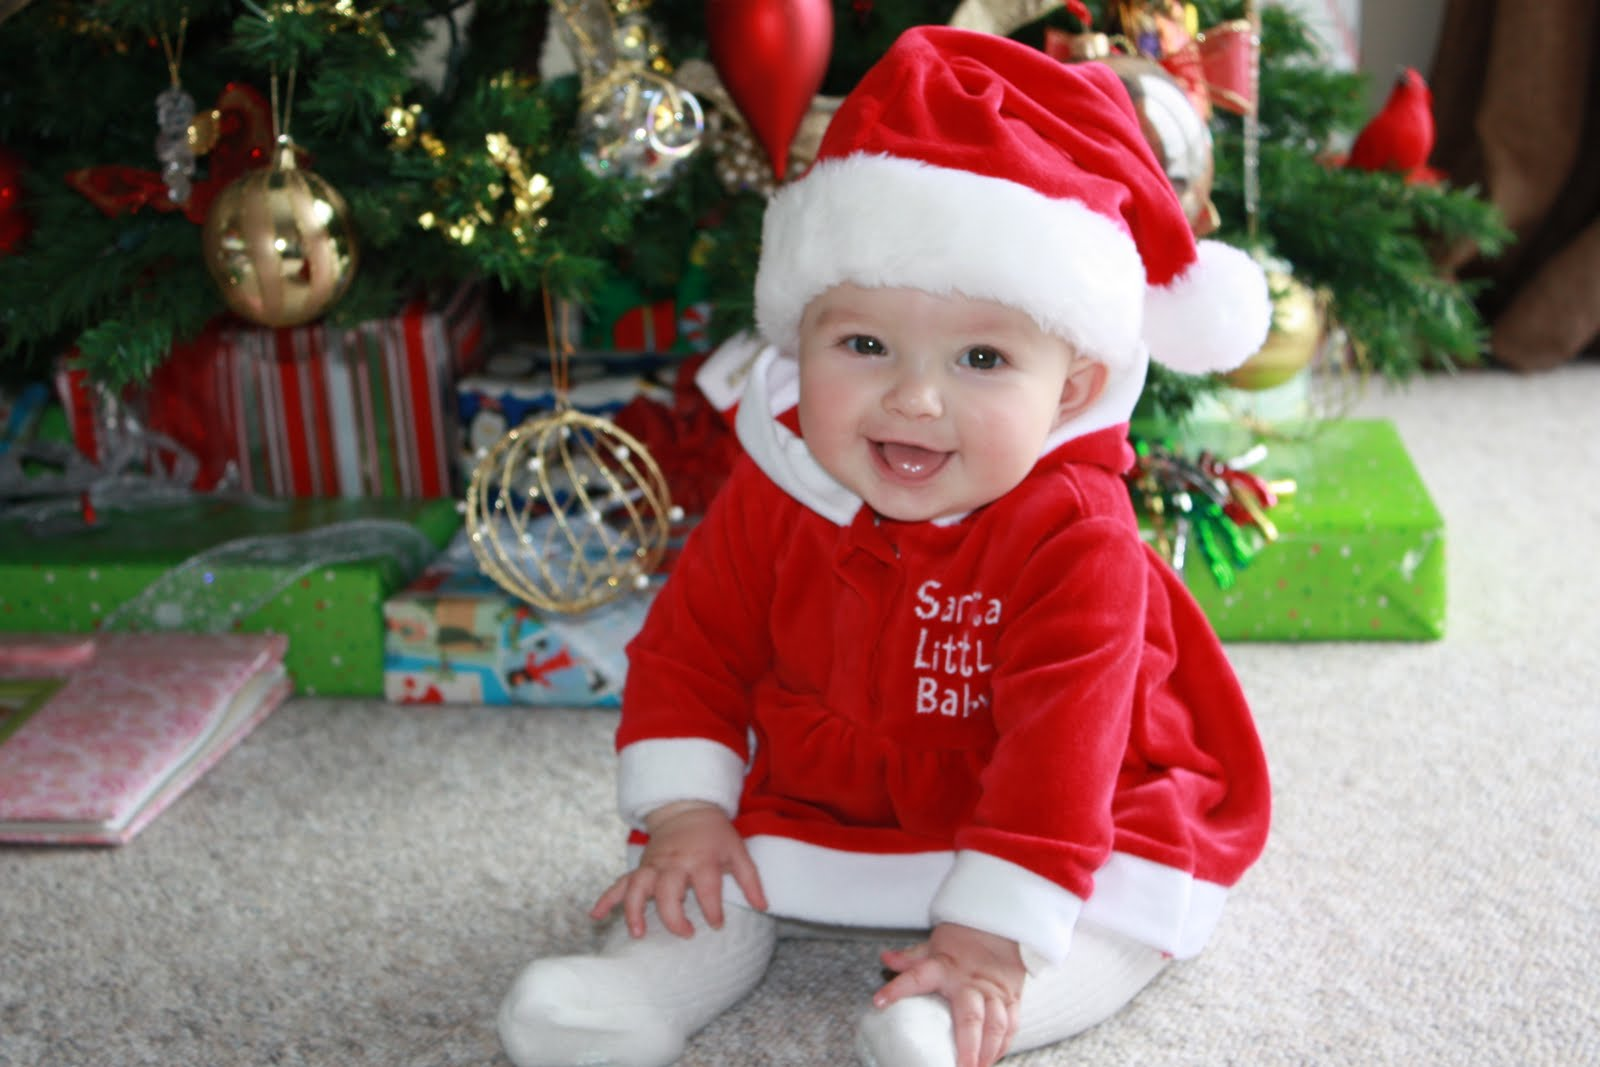 Baby Gifts For Christmas : Christmas wallpapers and images photos baby